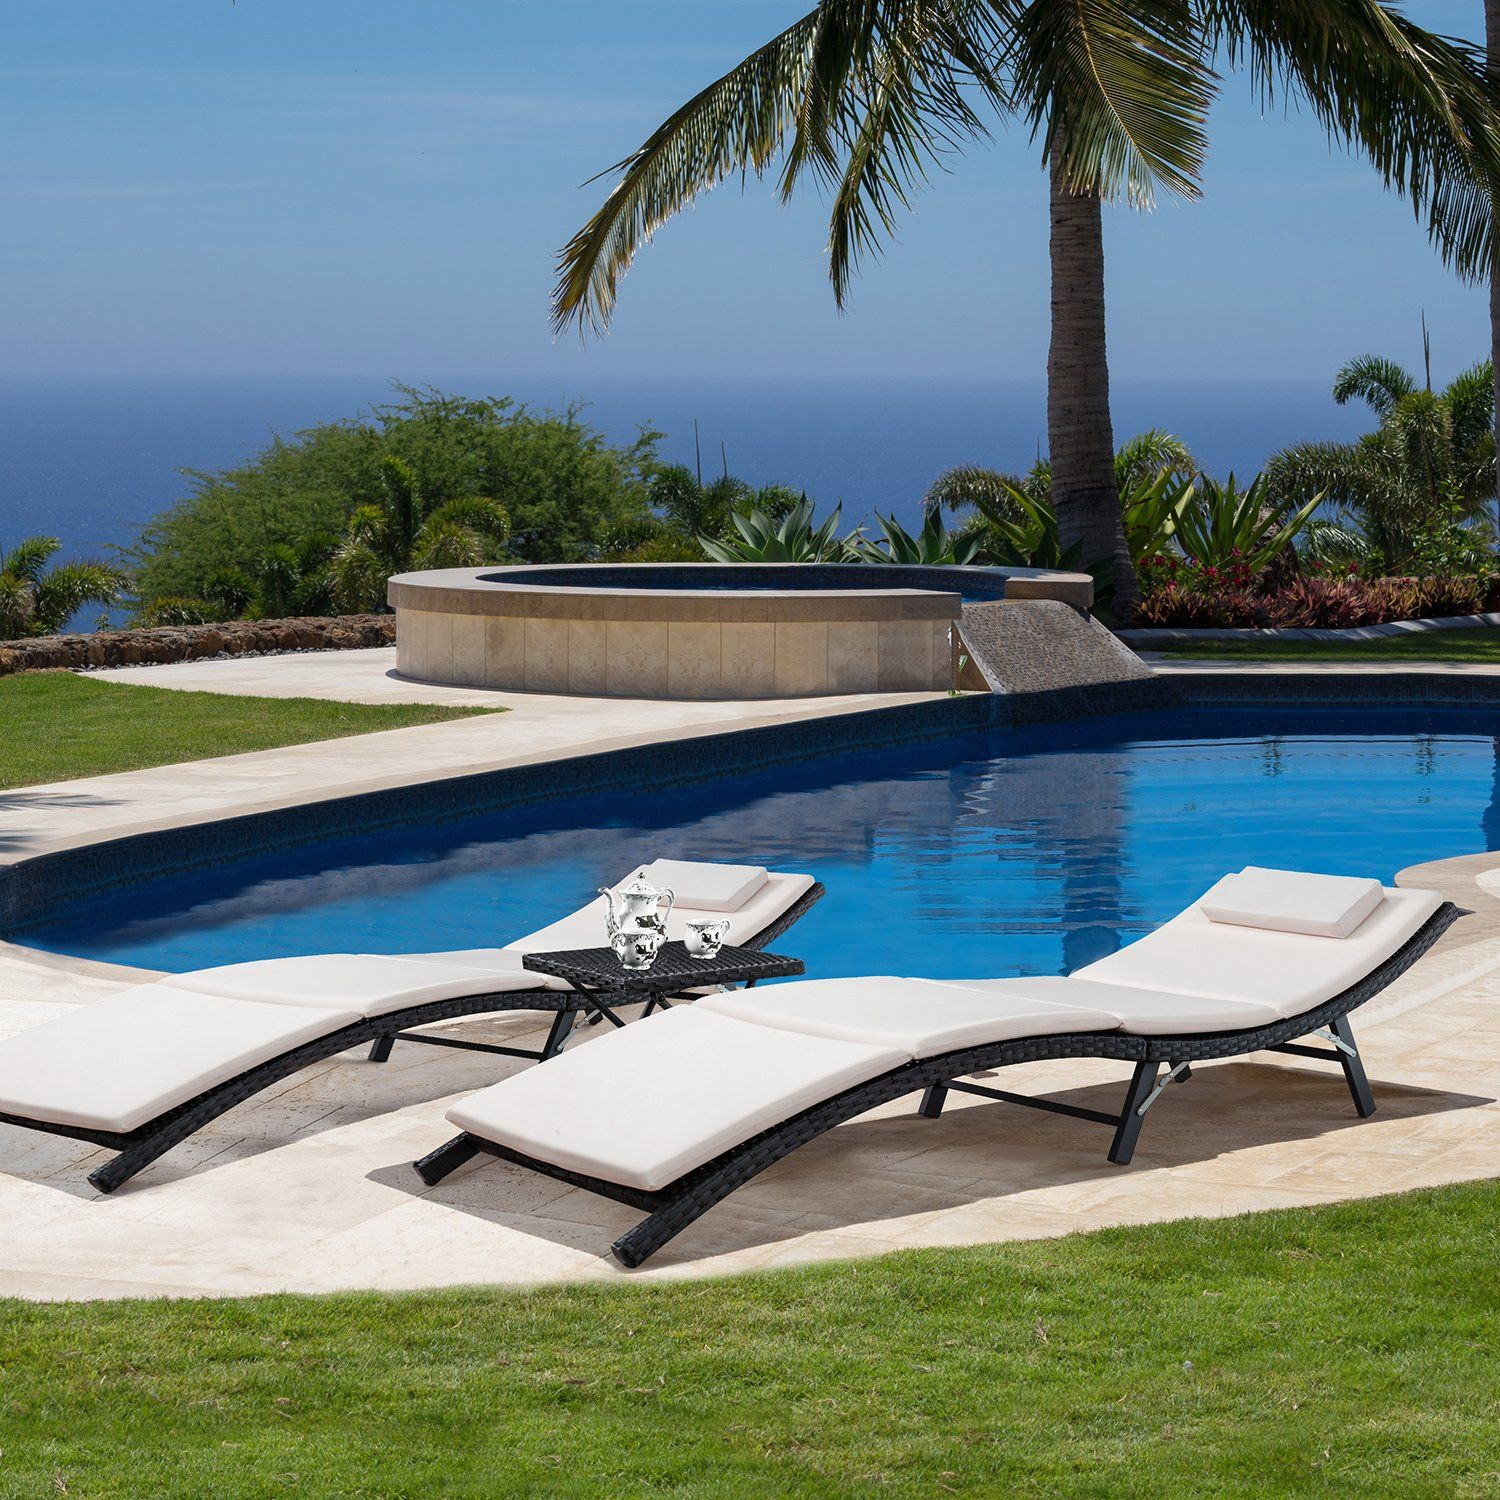 Flamaker 3 Pieces Outdoor Chaise Lounge with Cushion Modern Pool